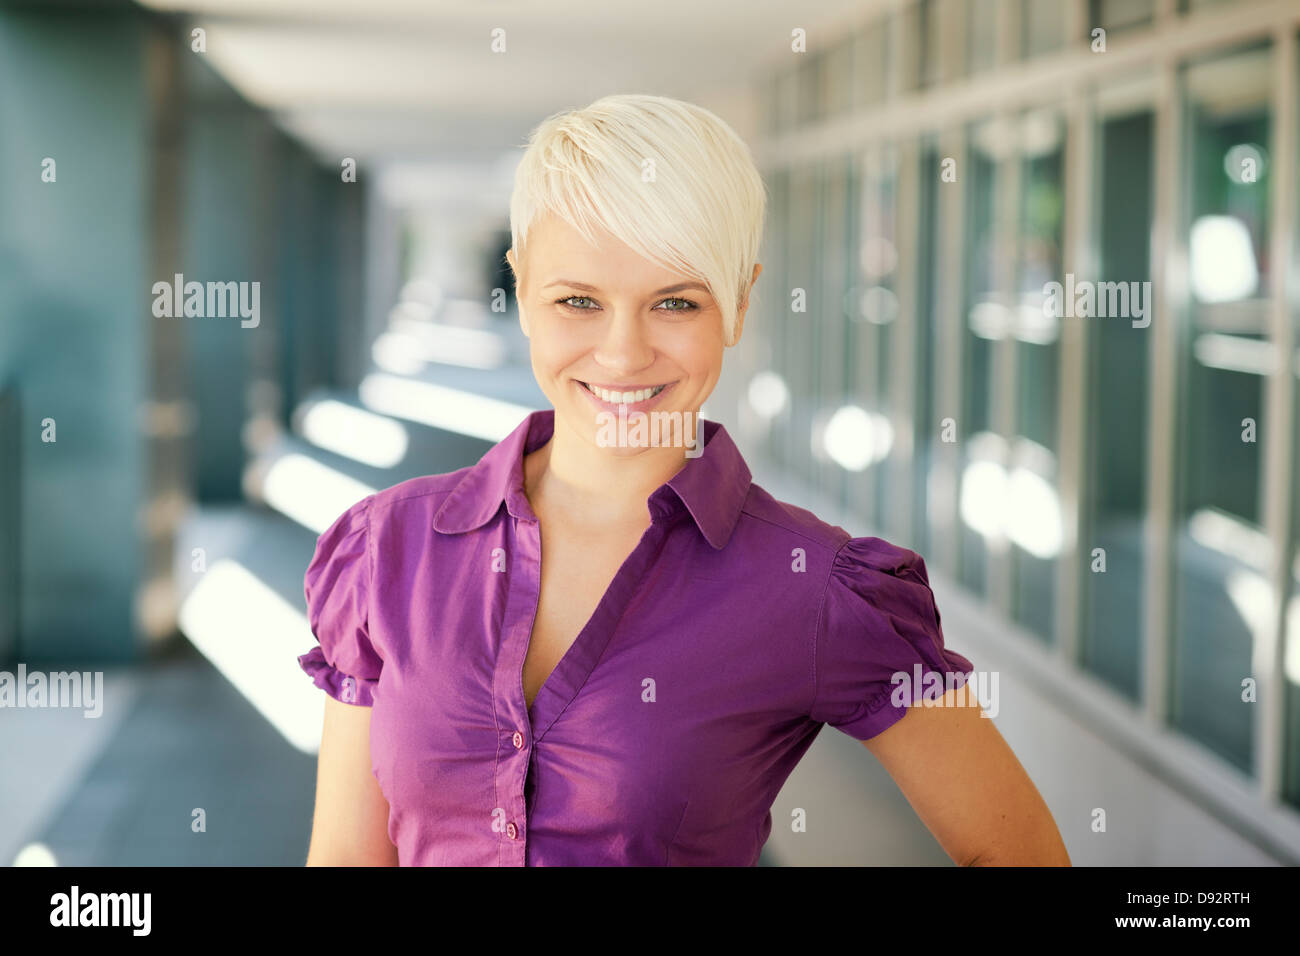 portrait of confident attractive business woman smiling and looking at camera out of office building - Stock Image